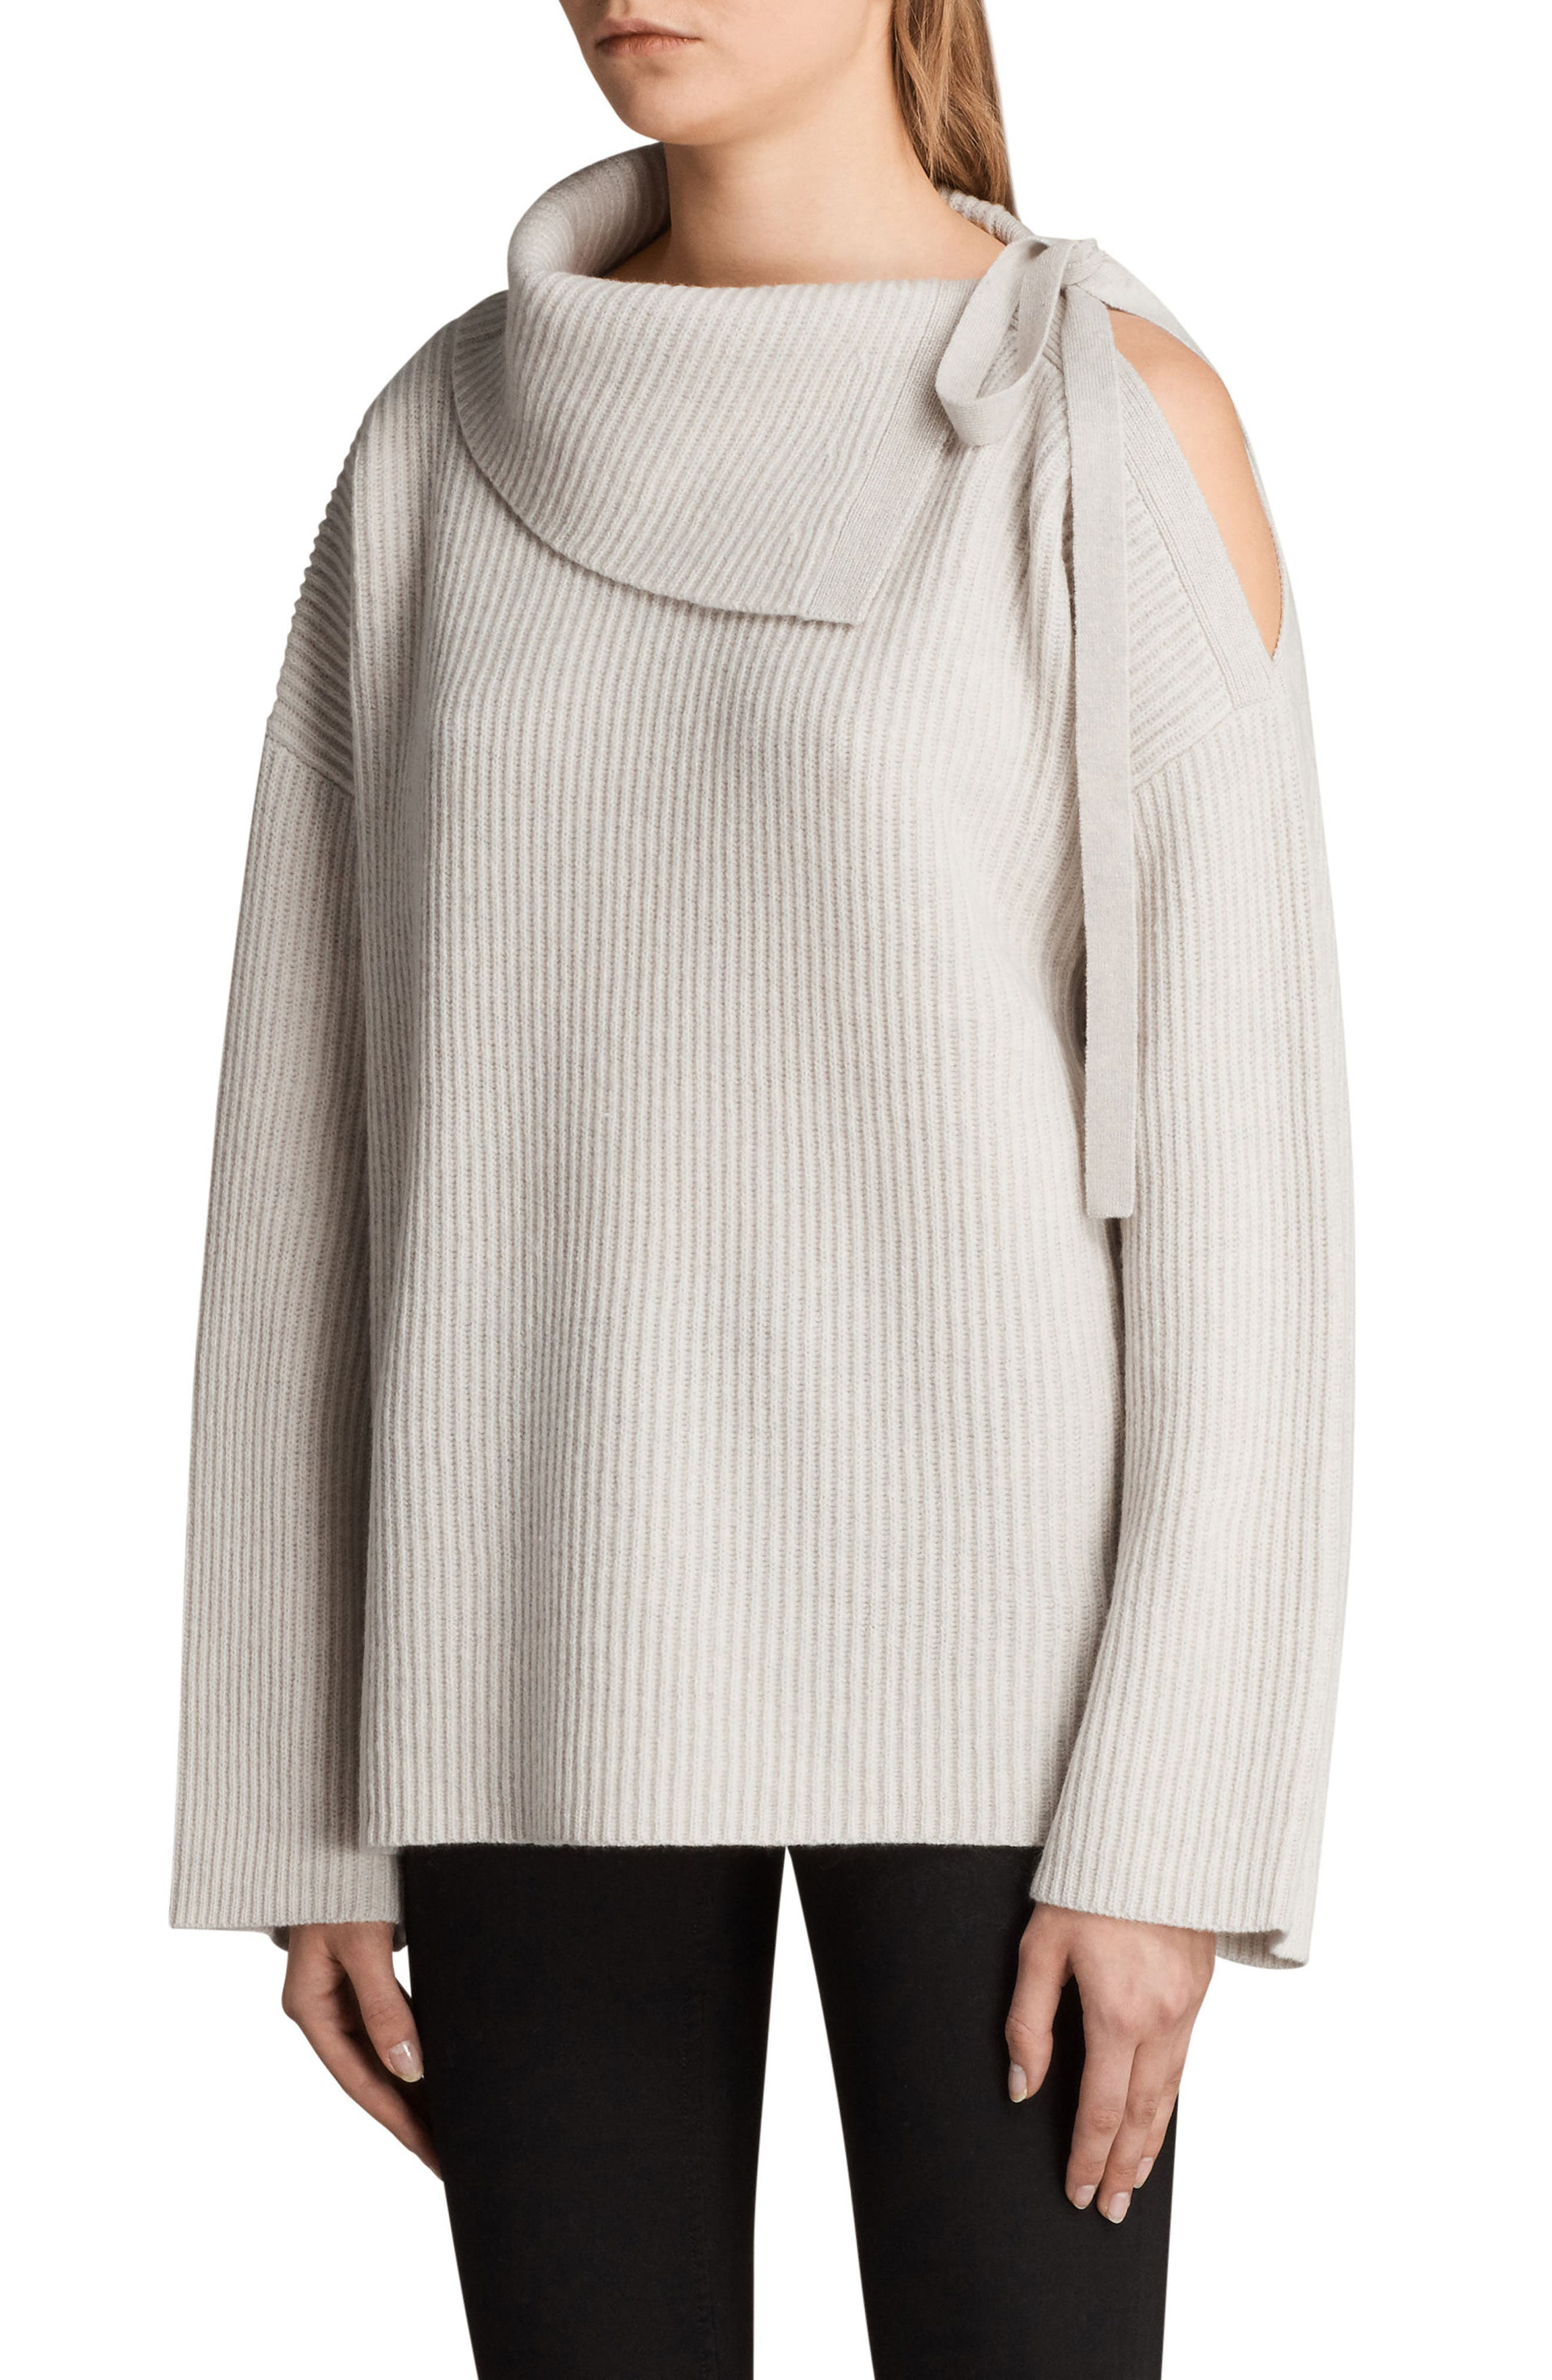 ALLSAINTS,                             Sura Tie Neck Sweater,                             Alternate thumbnail 3, color,                             252